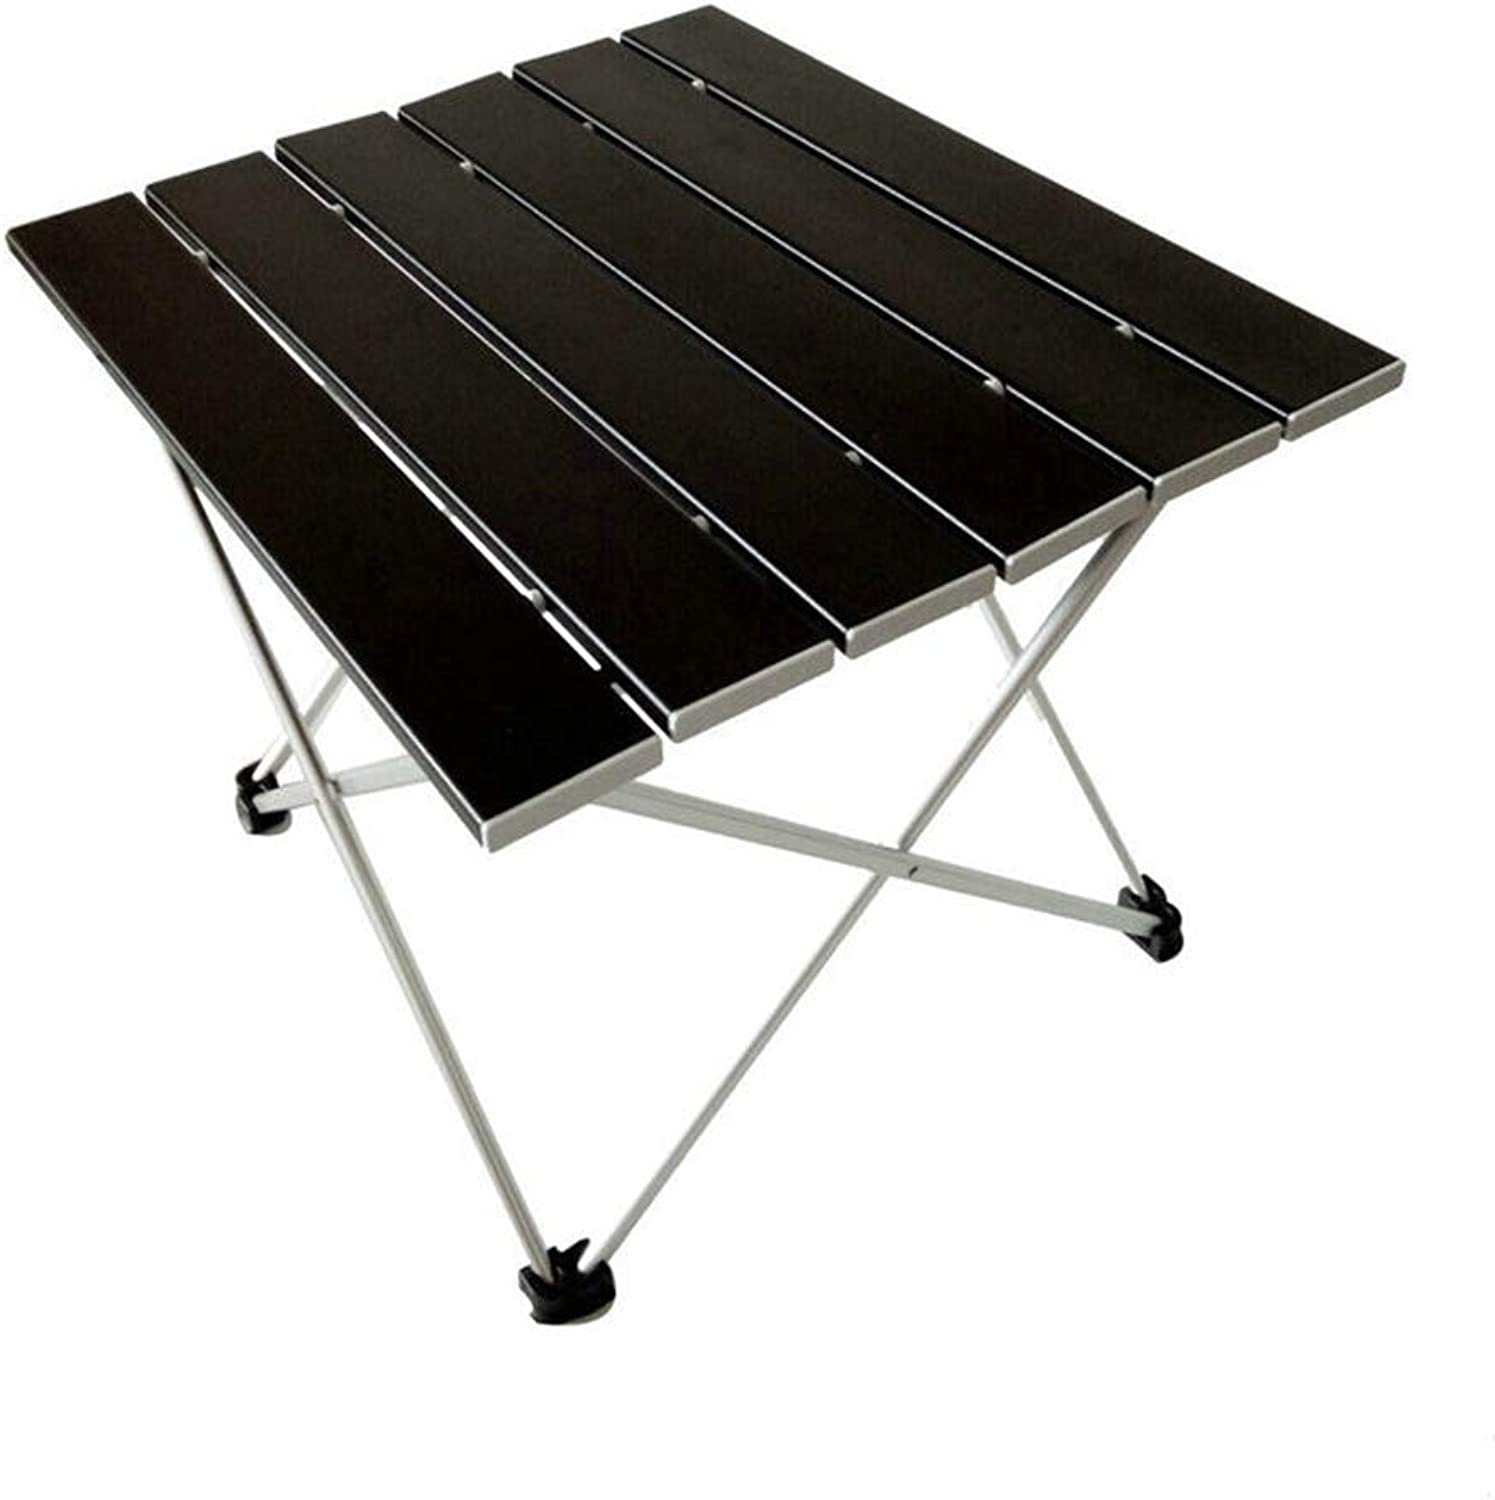 Aluminum Folding Collapsible Camping Table Roll up with Carrying Bag for Indoor and Outdoor Picnic, BBQ, Beach, Hiking, Travel, Fishing (Black)